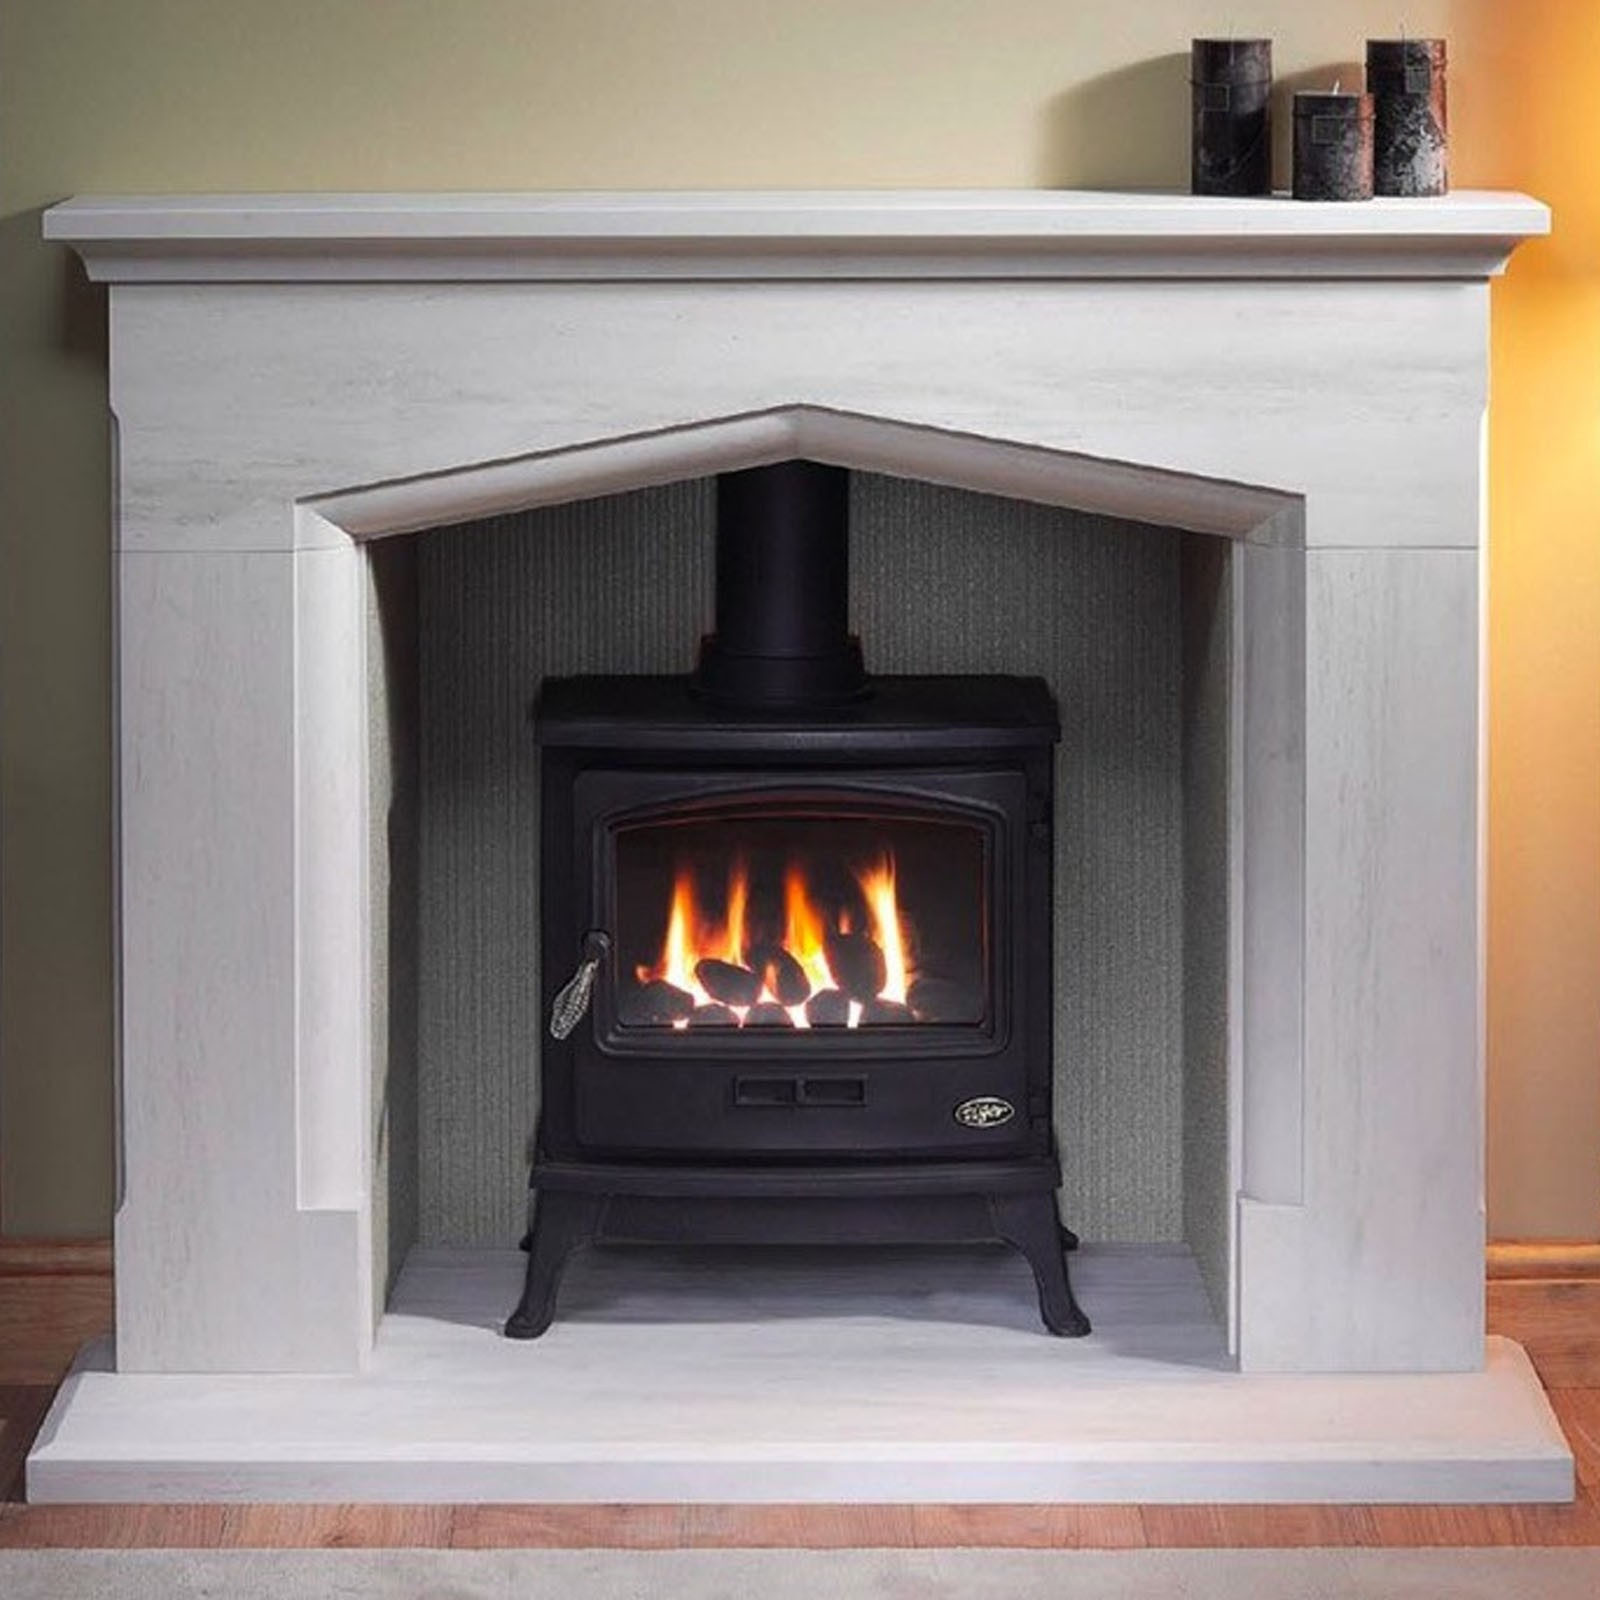 a or new fireplace pellet locations accessories serve with ready and complete stove hampshire andover room massachusetts gas offering wood hearthworks customers stoves our of to centers are fireplaces